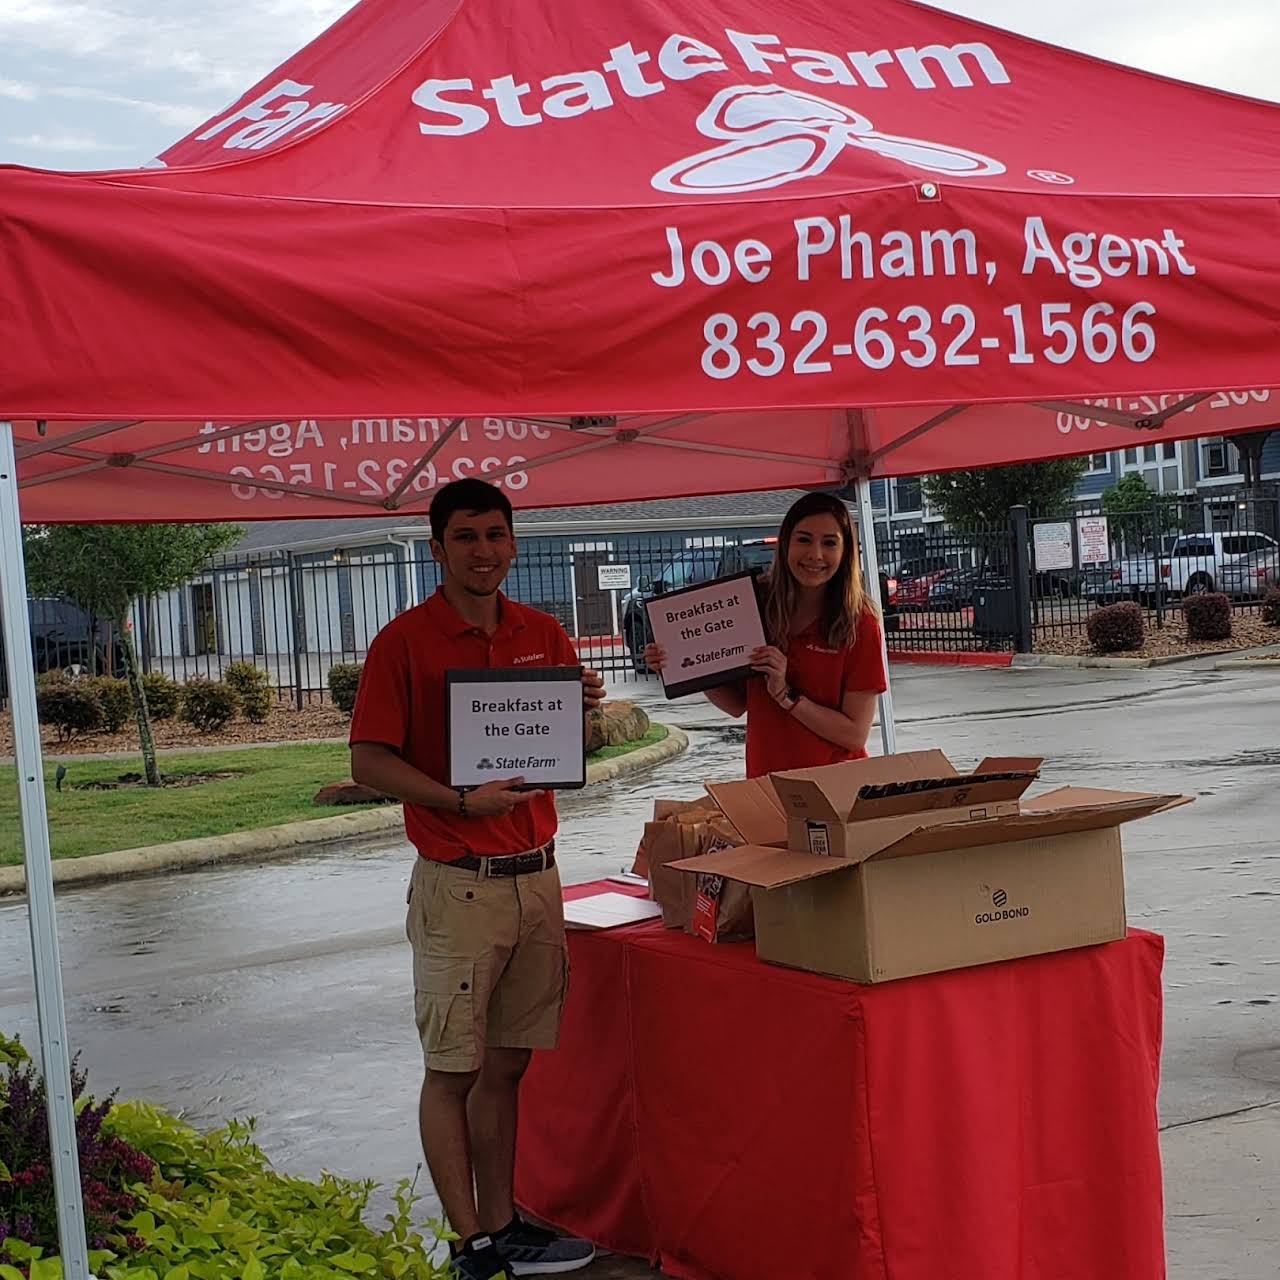 Joe Pham State Farm Insurance Agent Insurance Agency In League City